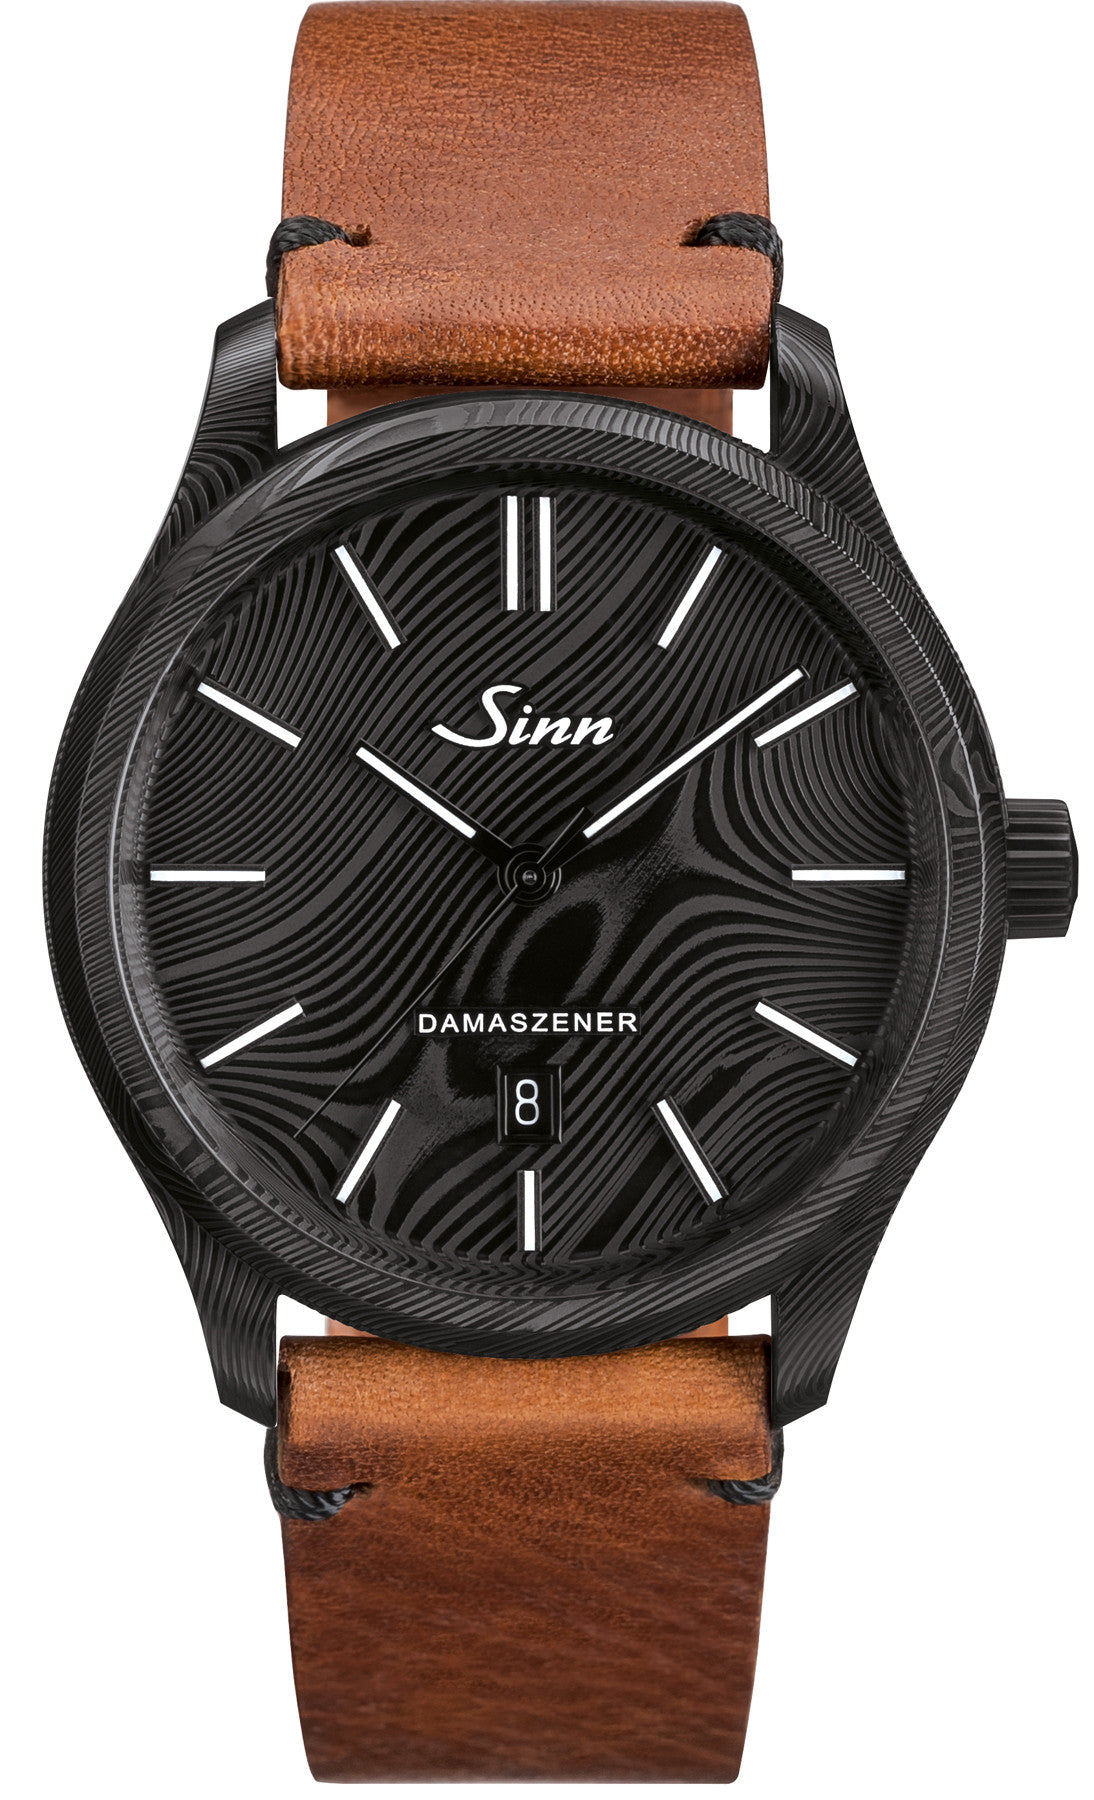 Sinn Watch 1800 S Damascus Steel Limited Edition Tan Leather